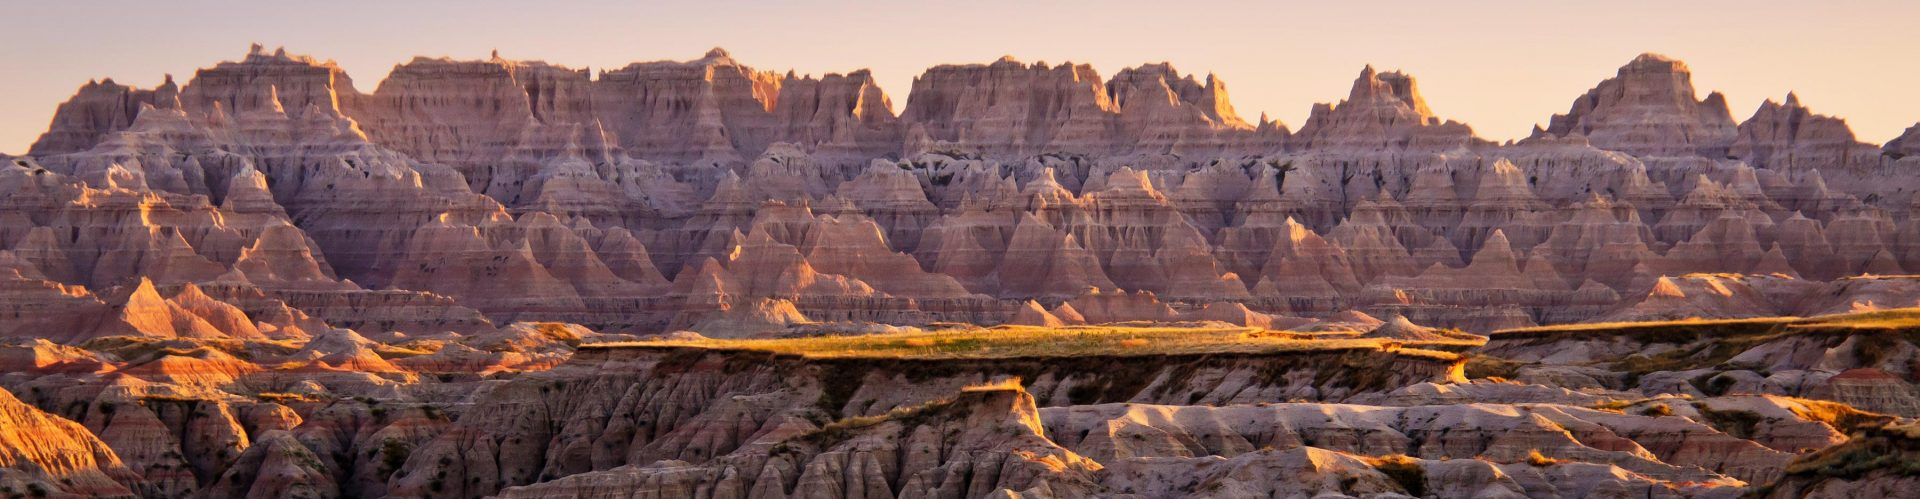 Badlands Nationalpark, South Dakota